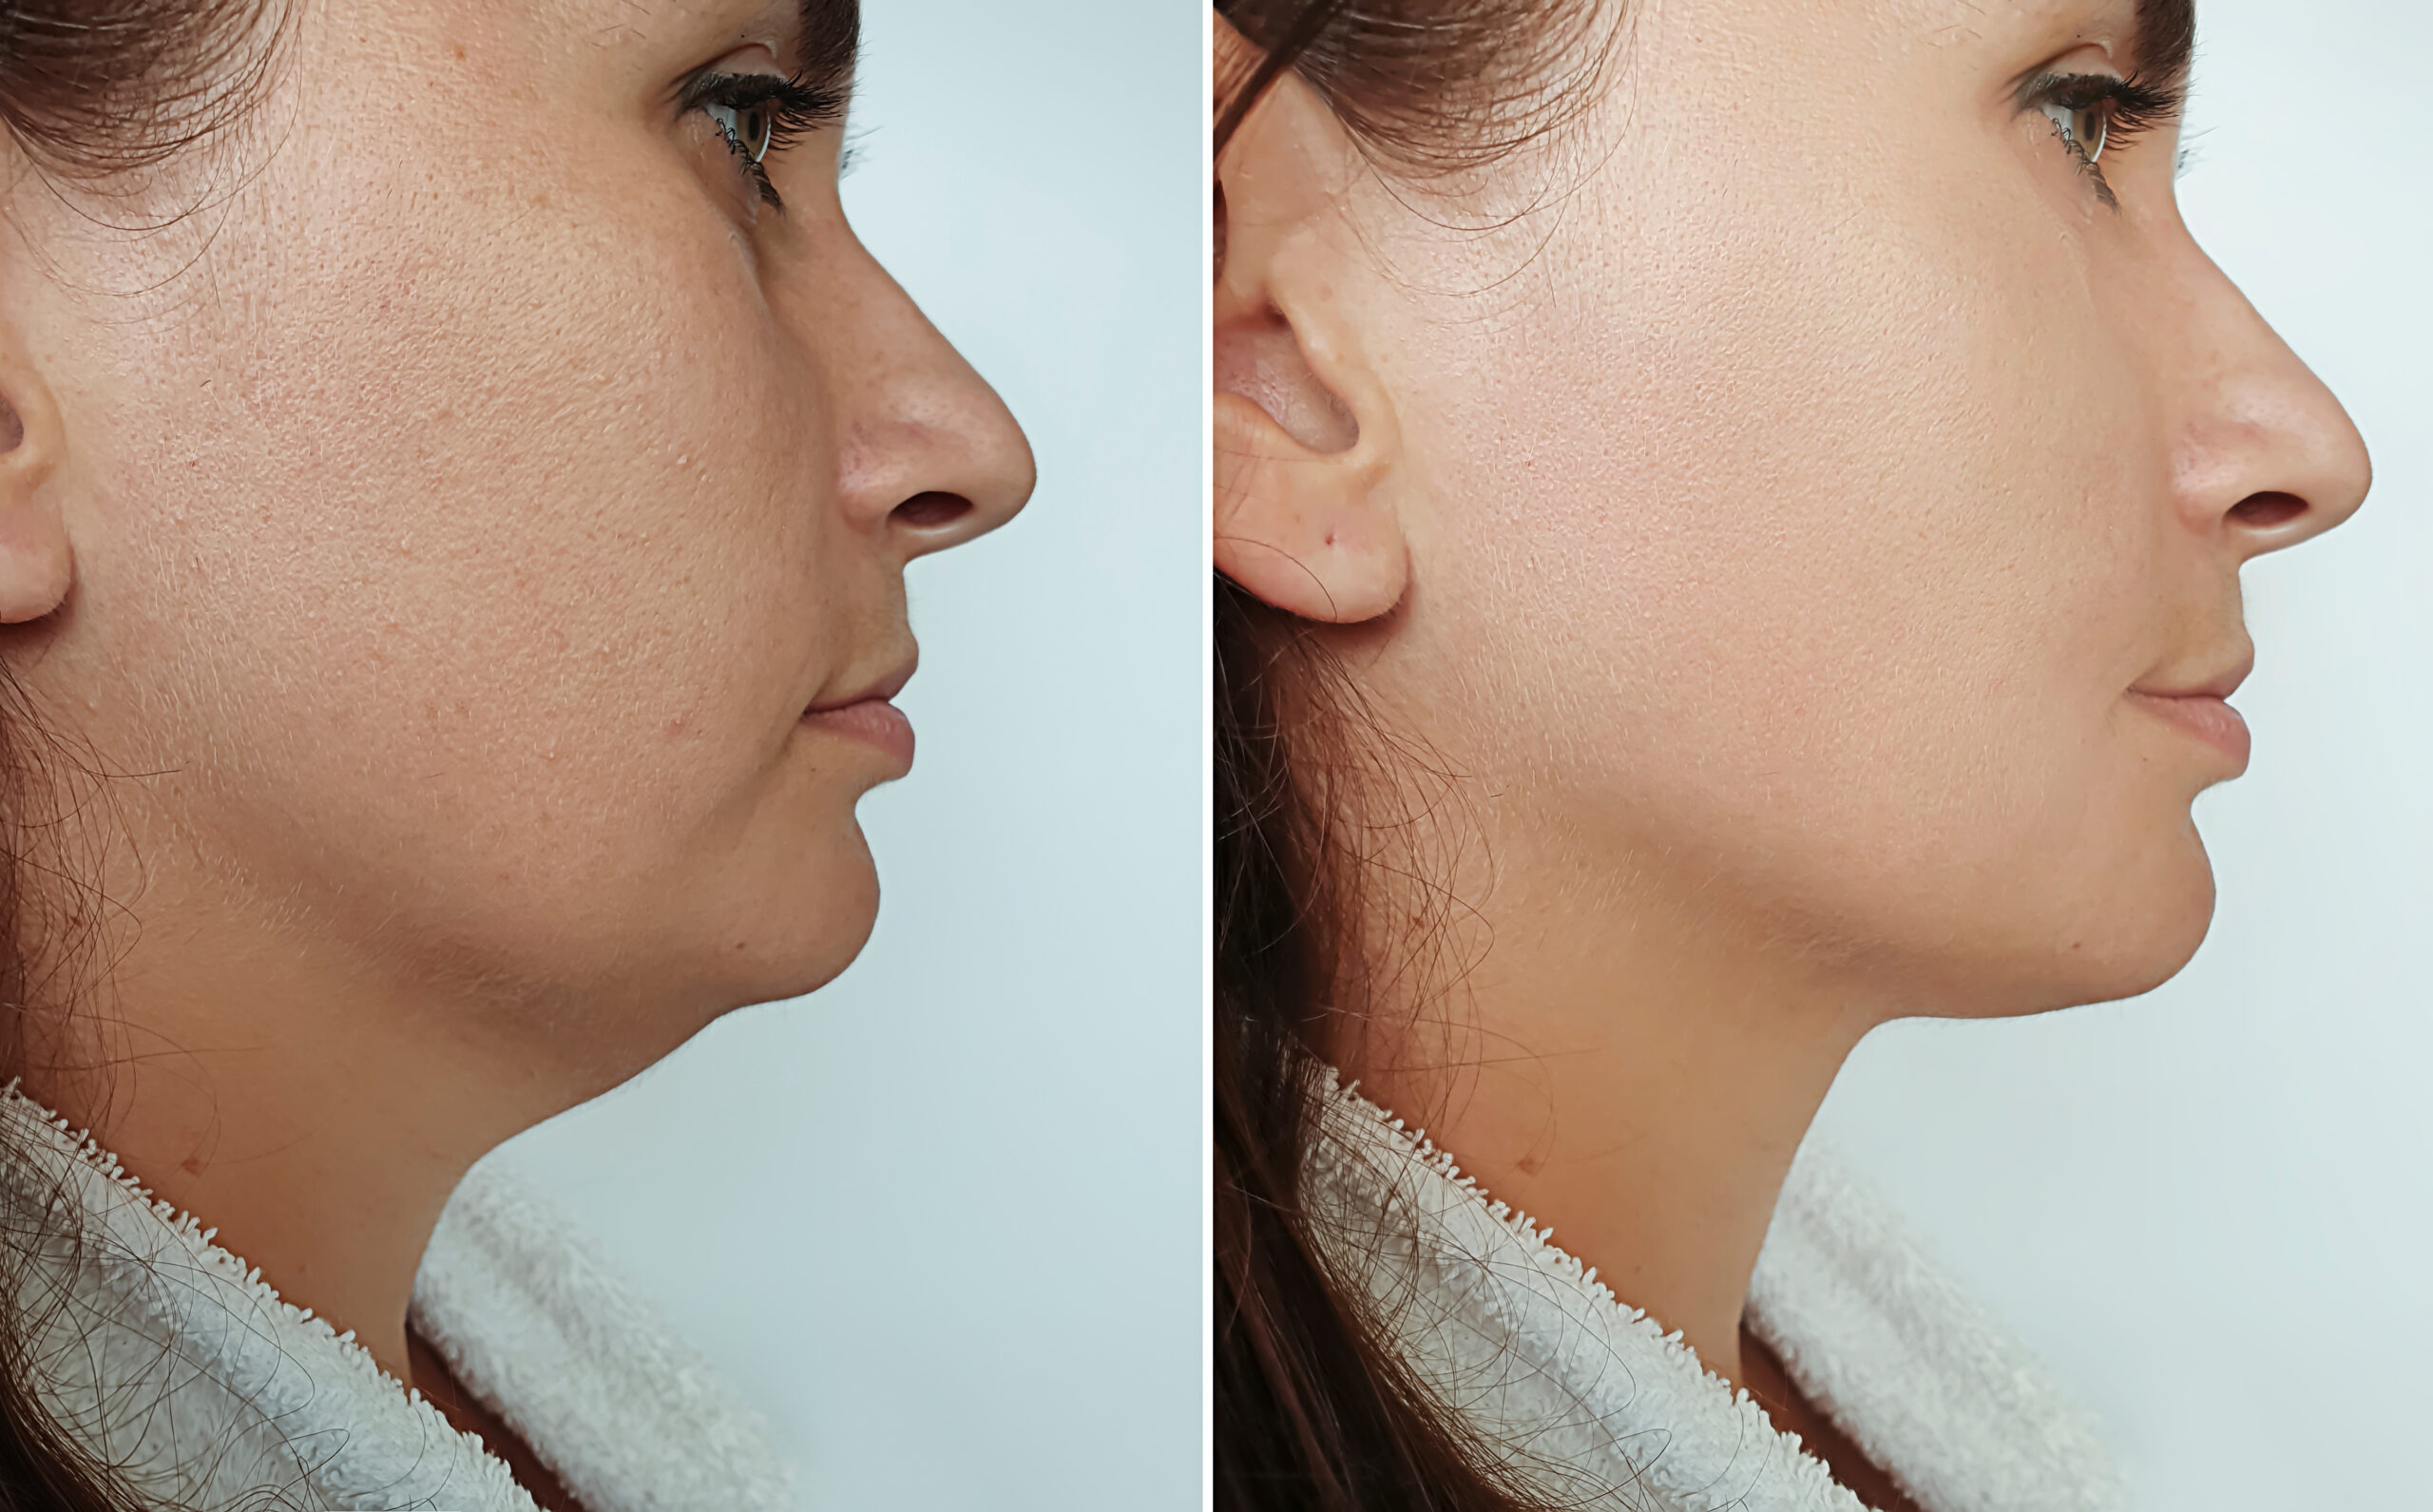 Before and after pictures of a woman who received the Kybella treatment for her double chin.